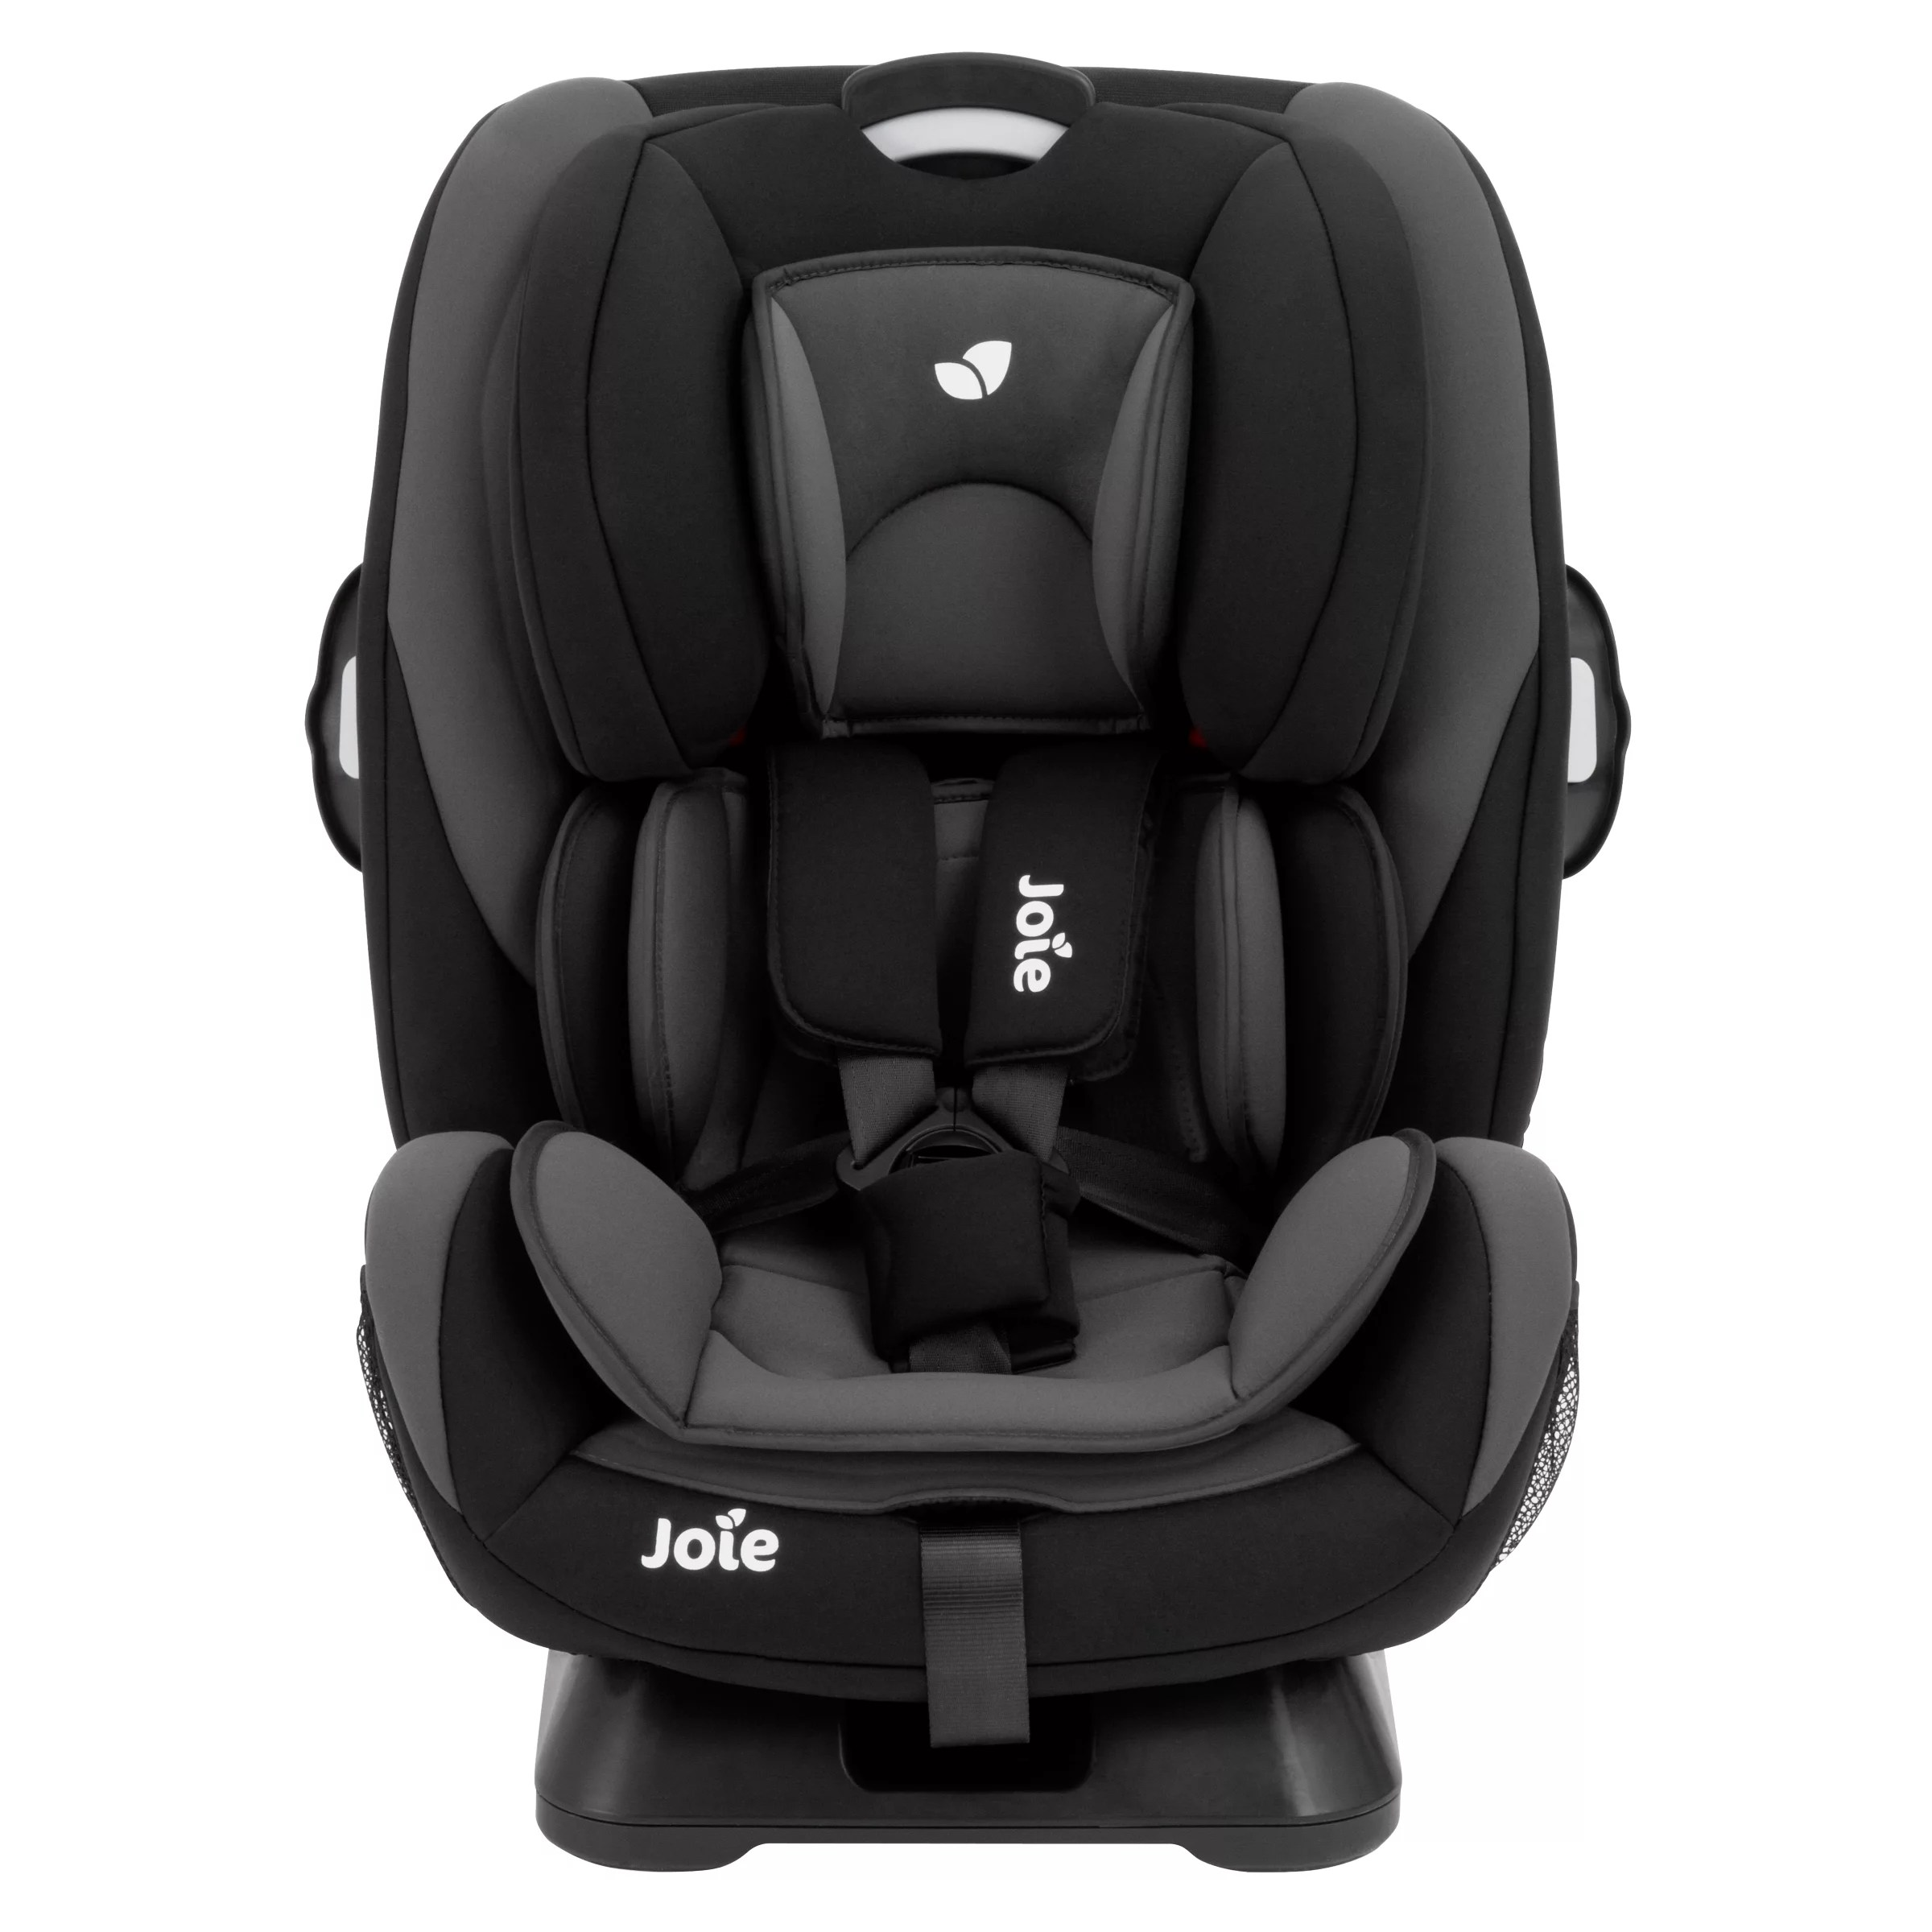 Joie Baby Car Seat Usa Joie Baby Every Stage Group 1 2 3 Car Seat Two Tone Black